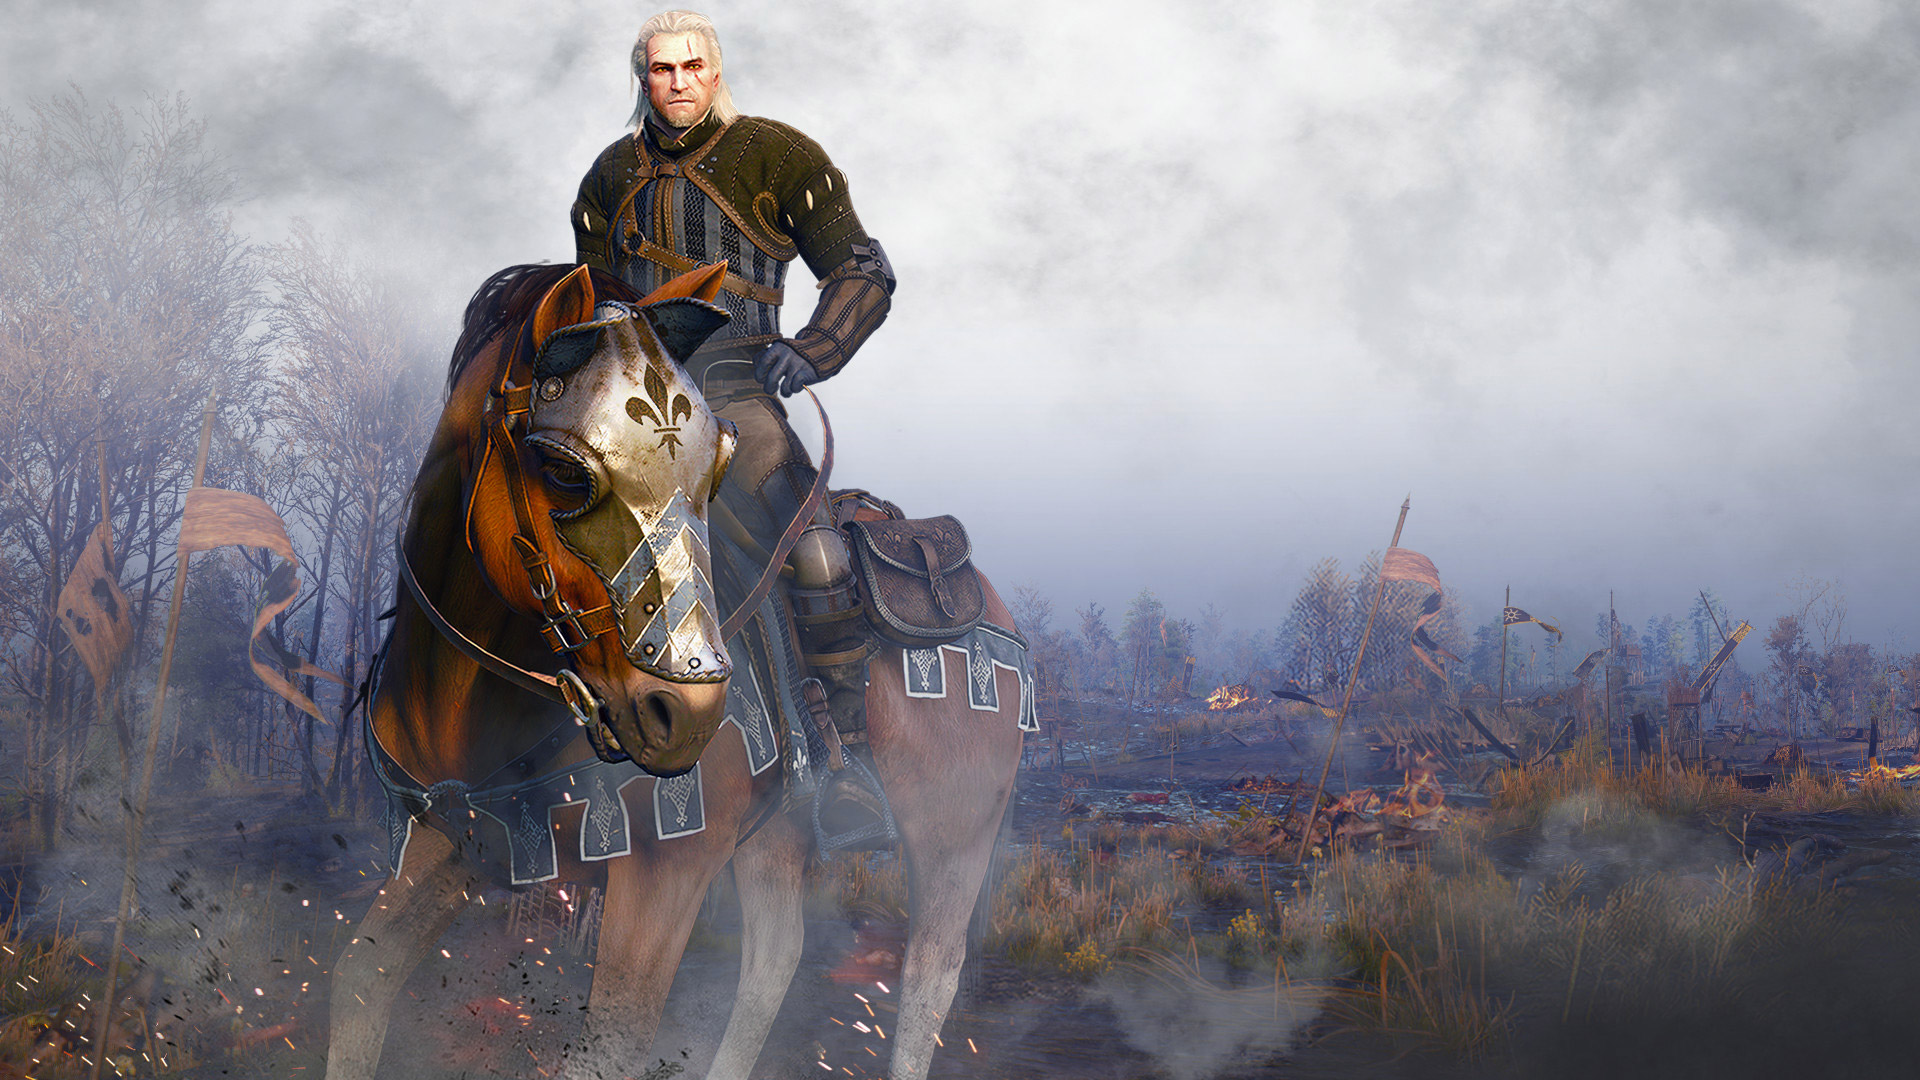 The Witcher 3 is the best open world game of the year Polygon